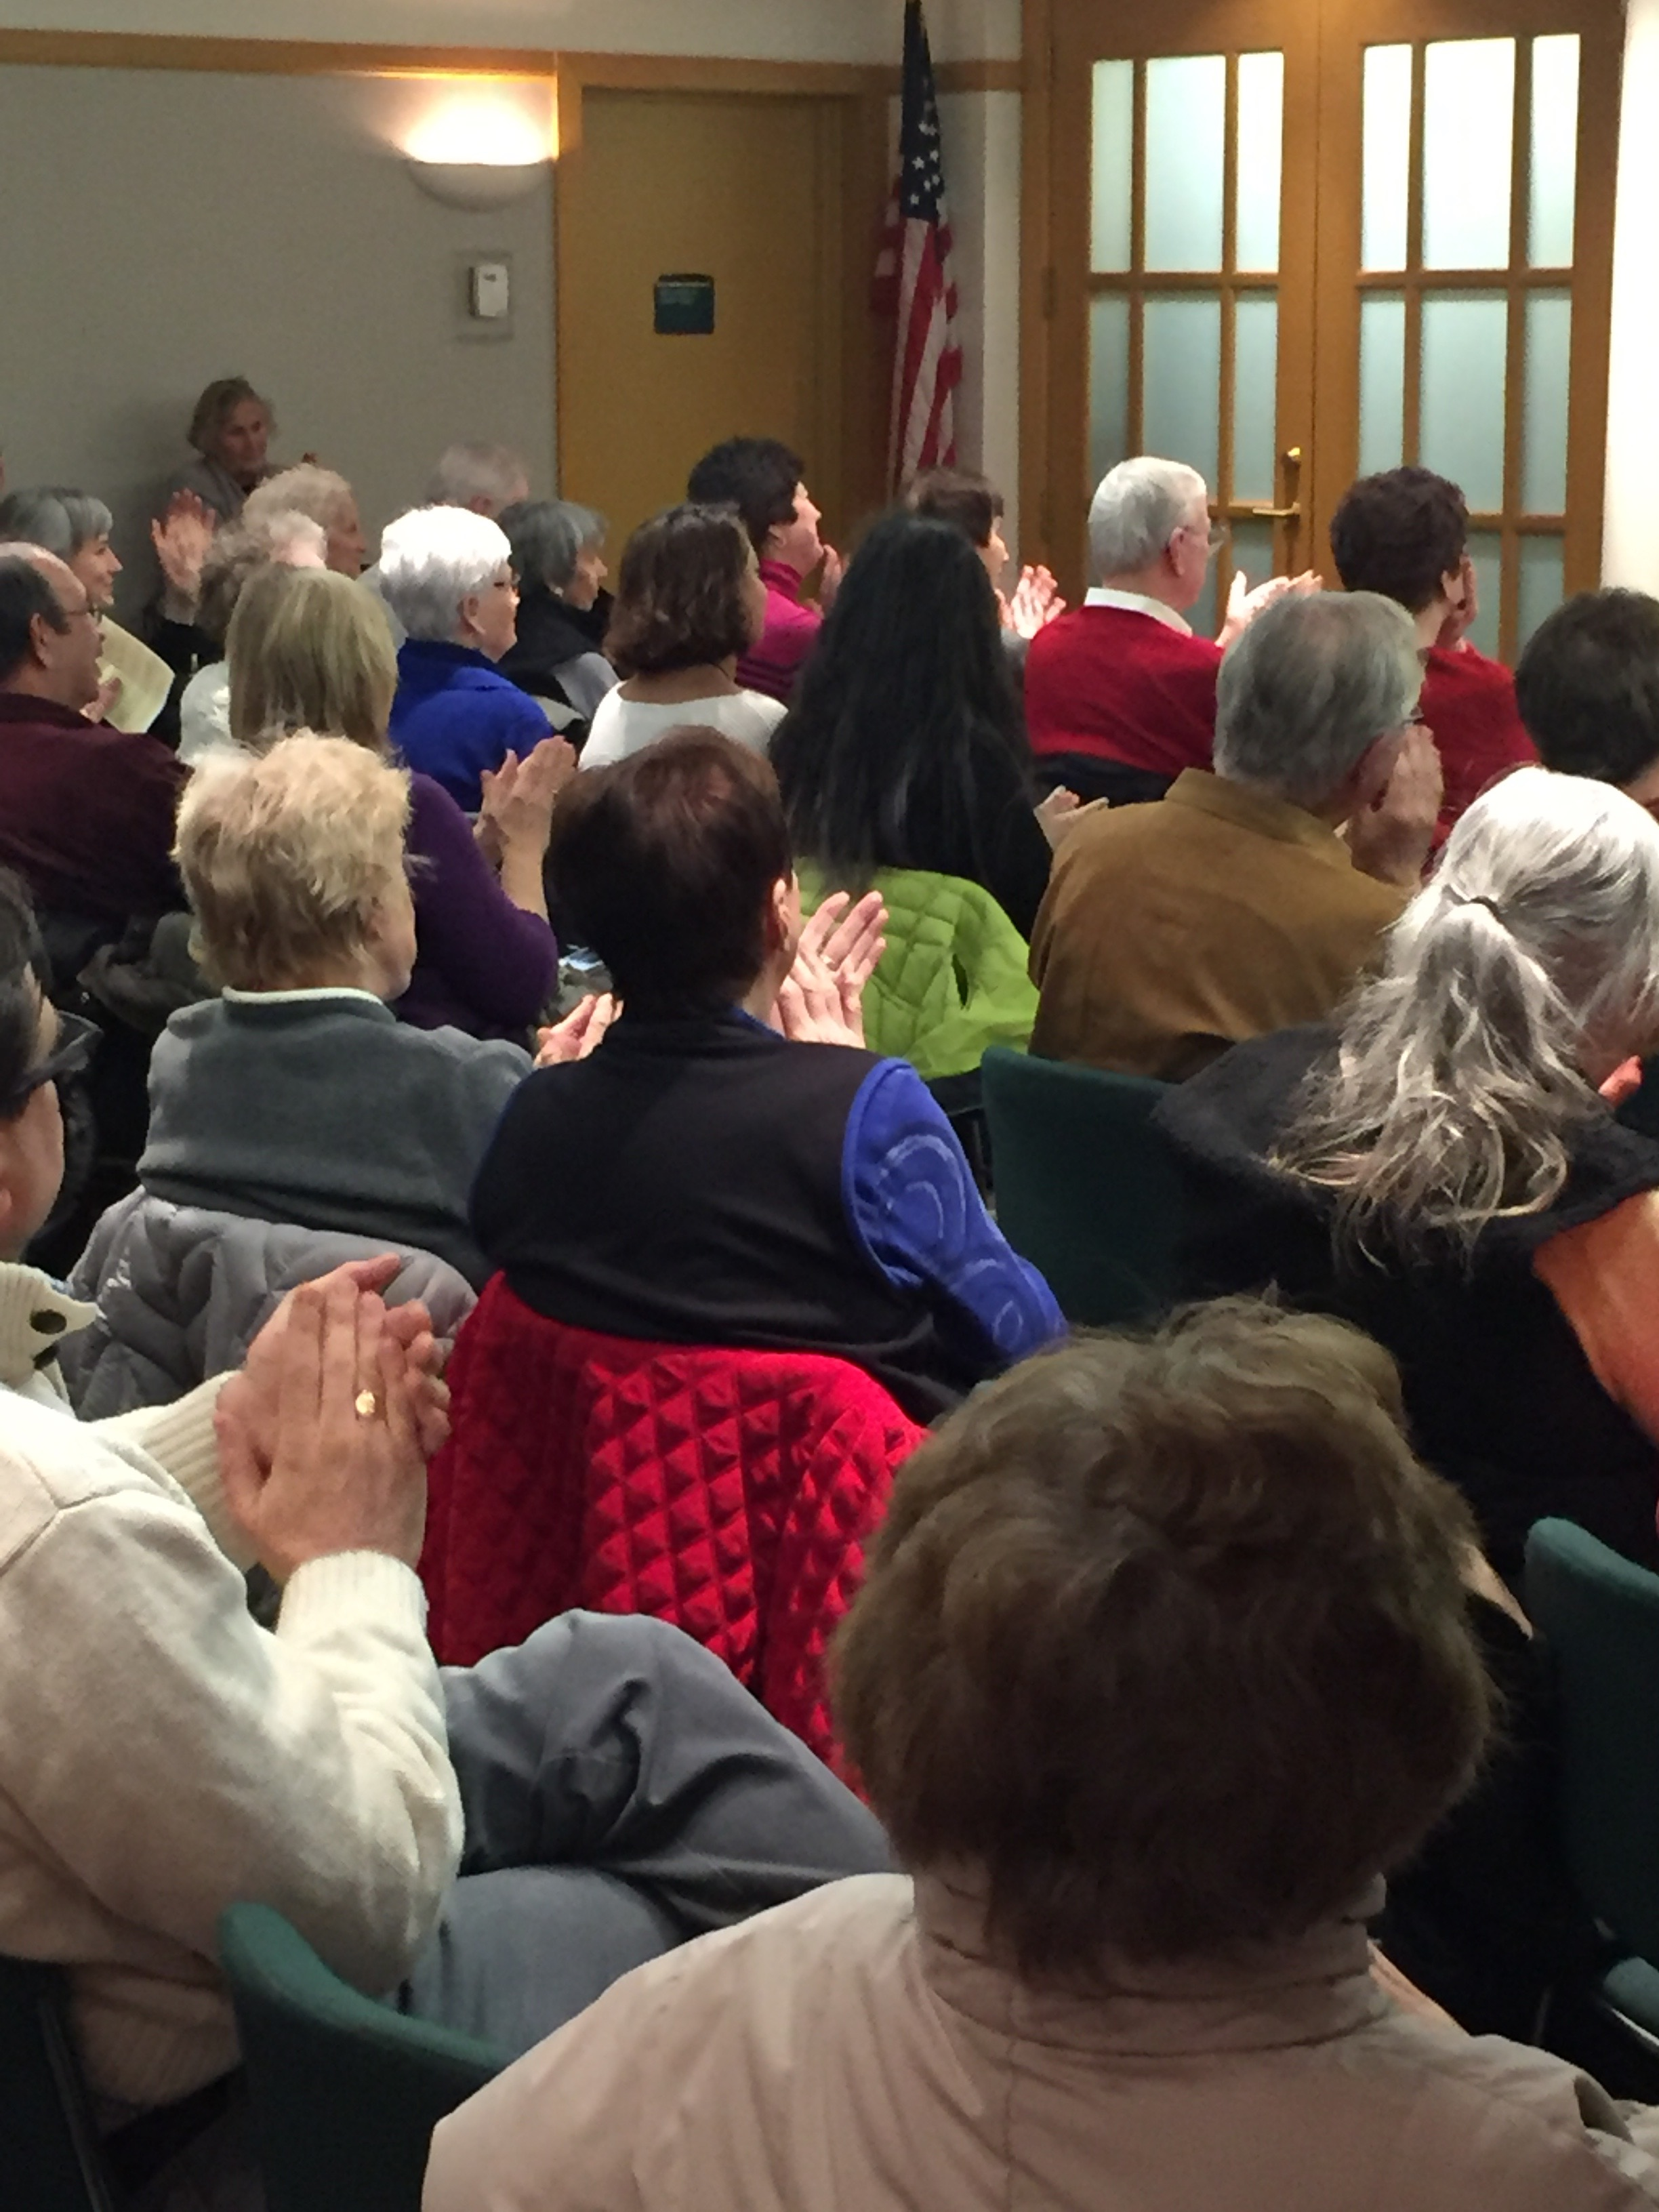 The crowd at 'Piano Recital by Ethan Valentin'